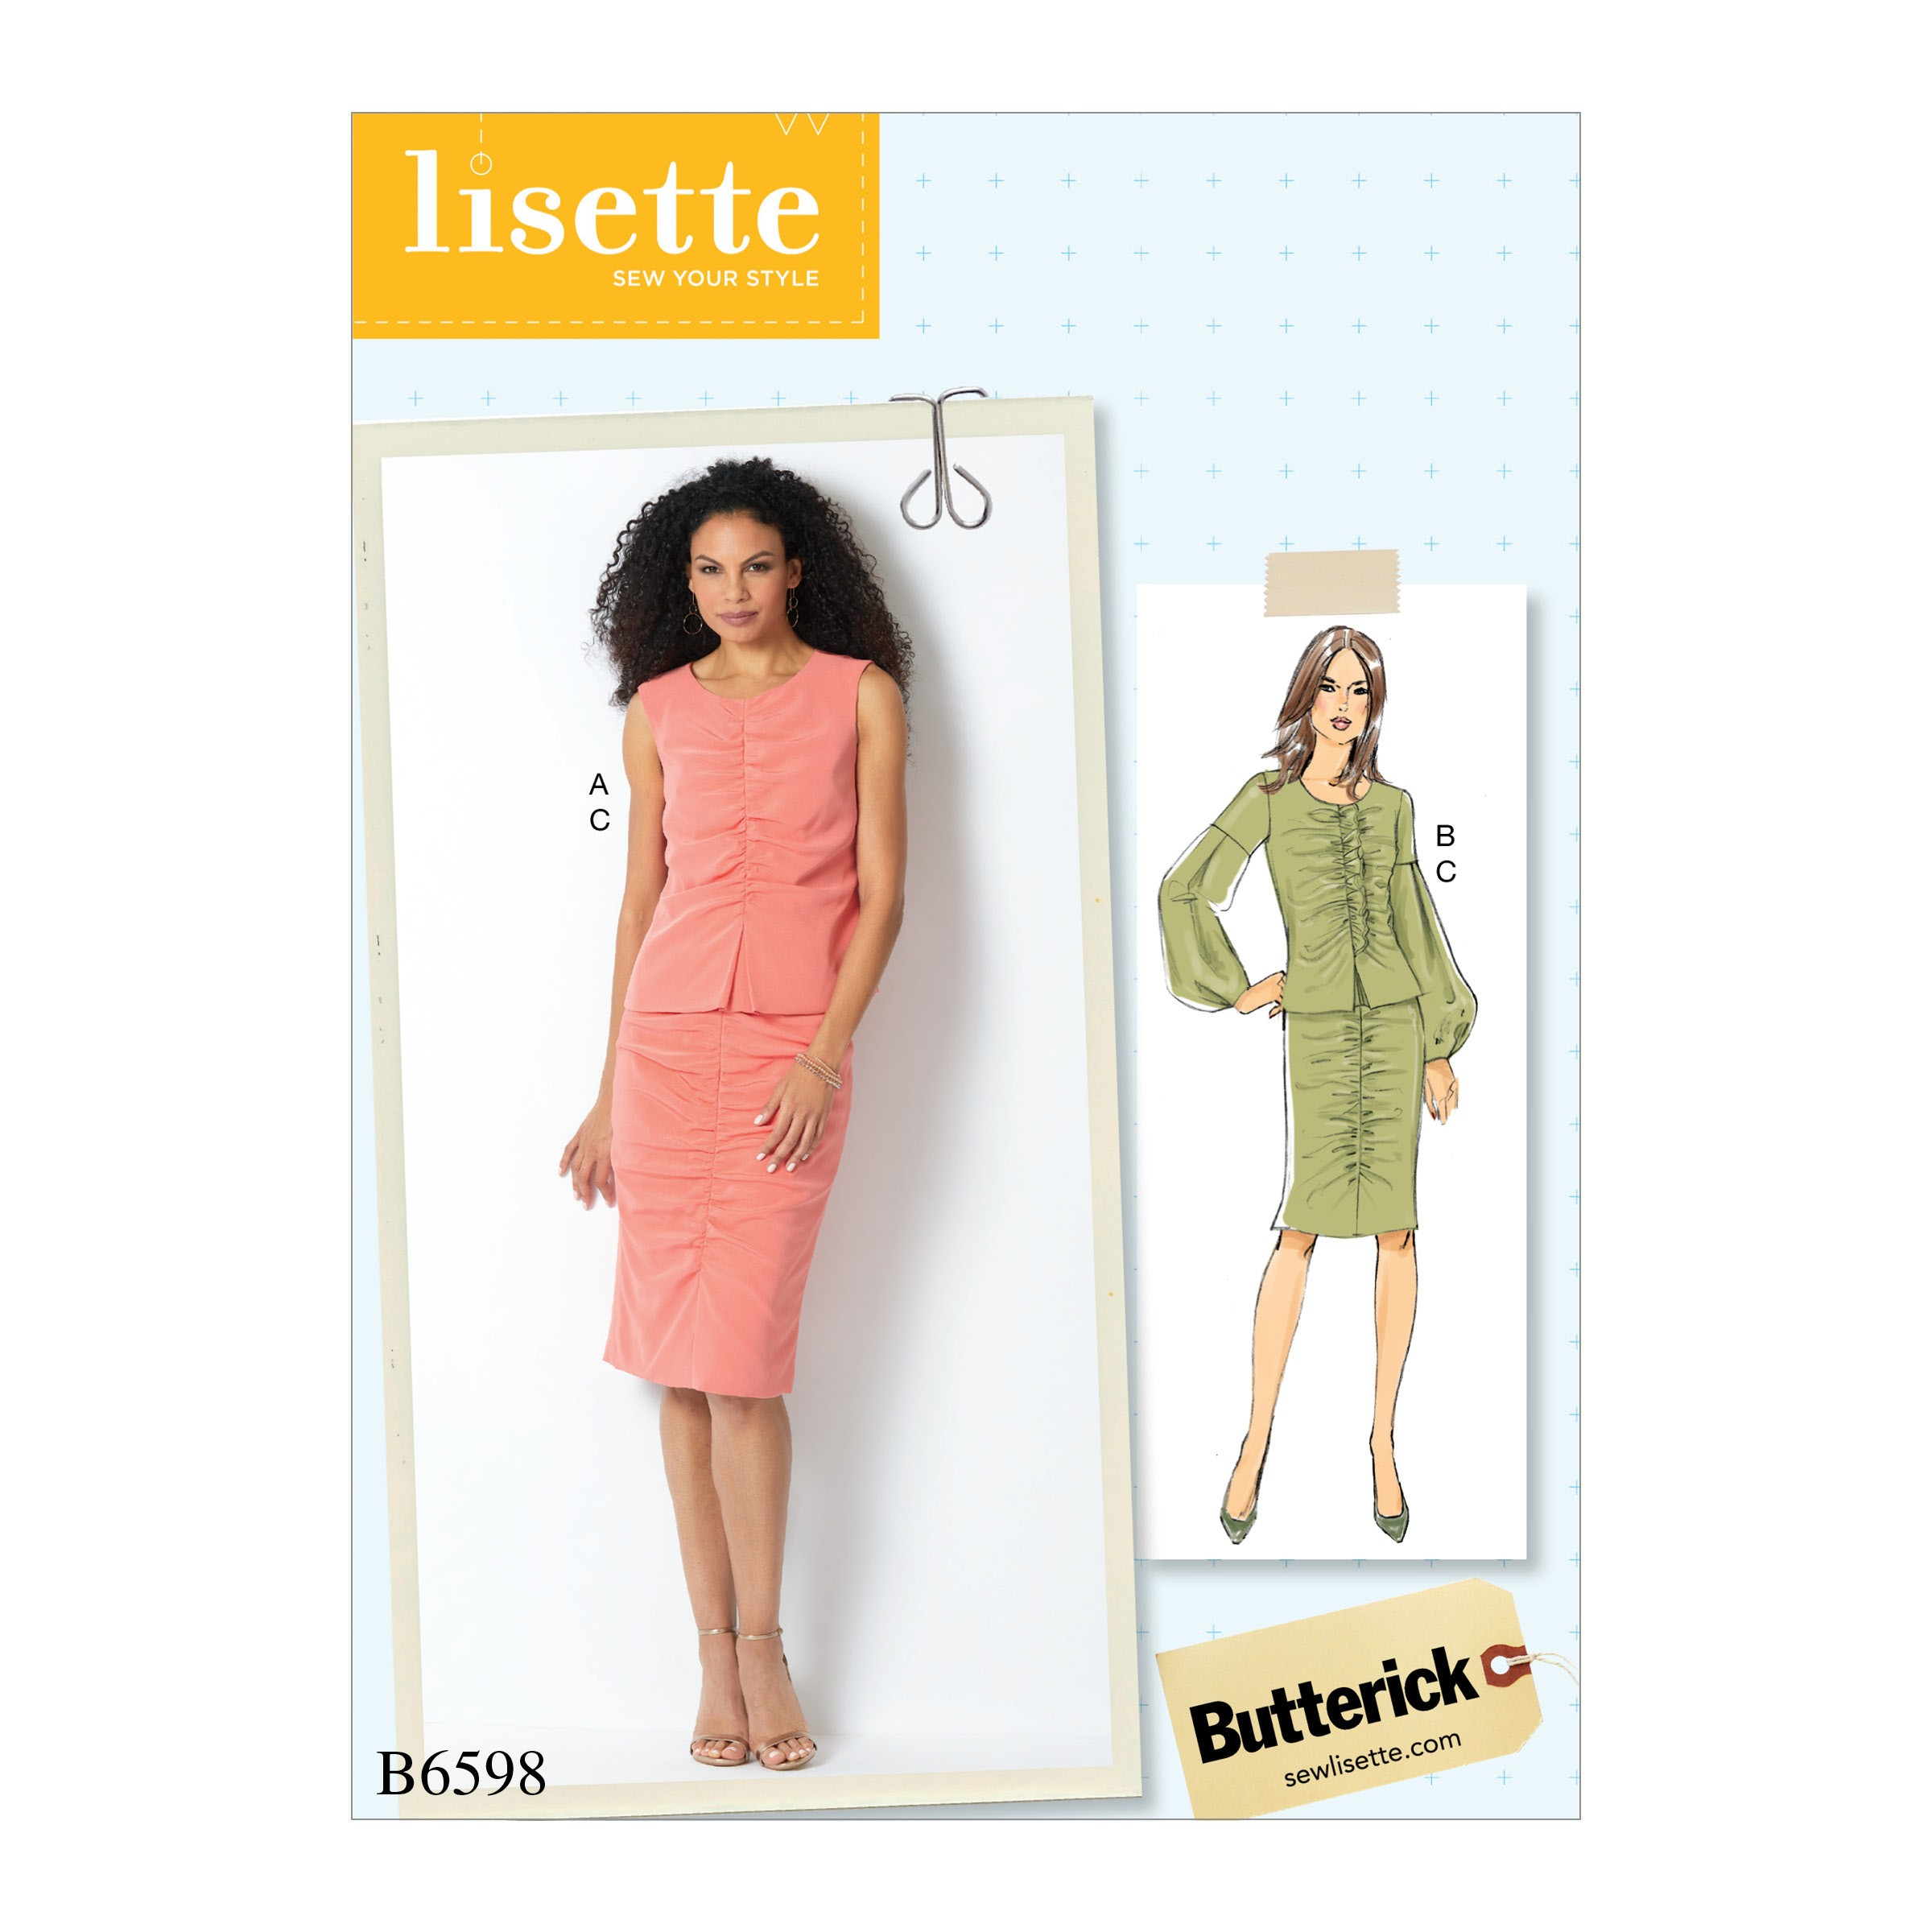 Butterick Sewing Pattern 6598 Misses' Top and Skirt with Front Gather Detail